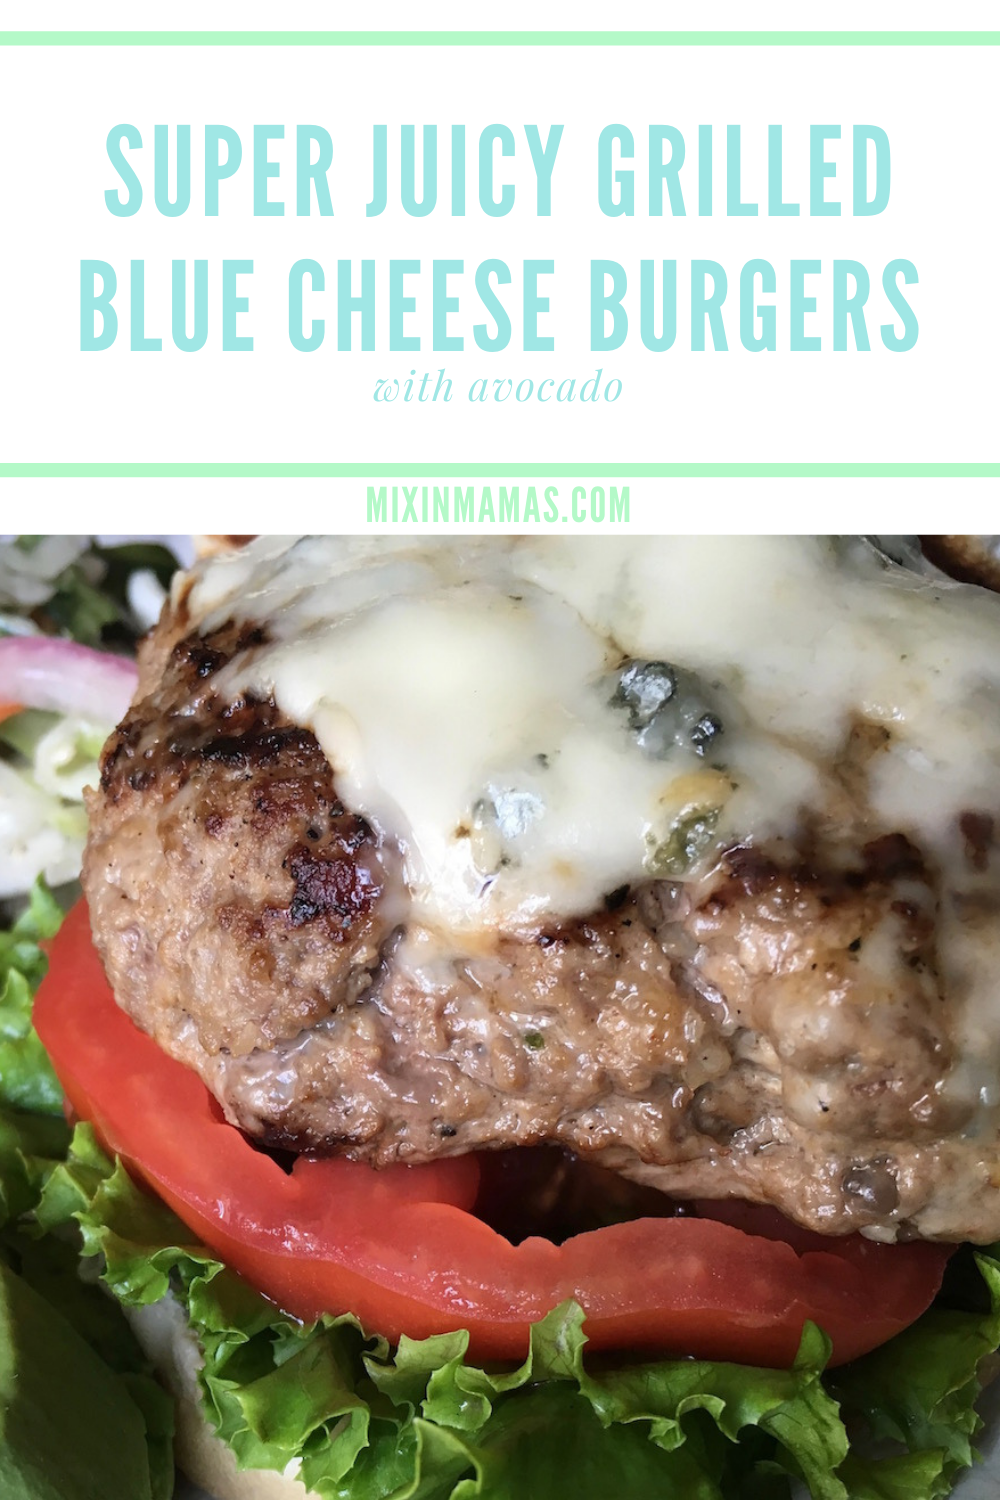 Super Juicy Grilled Blue Cheese Burgers with Avocado